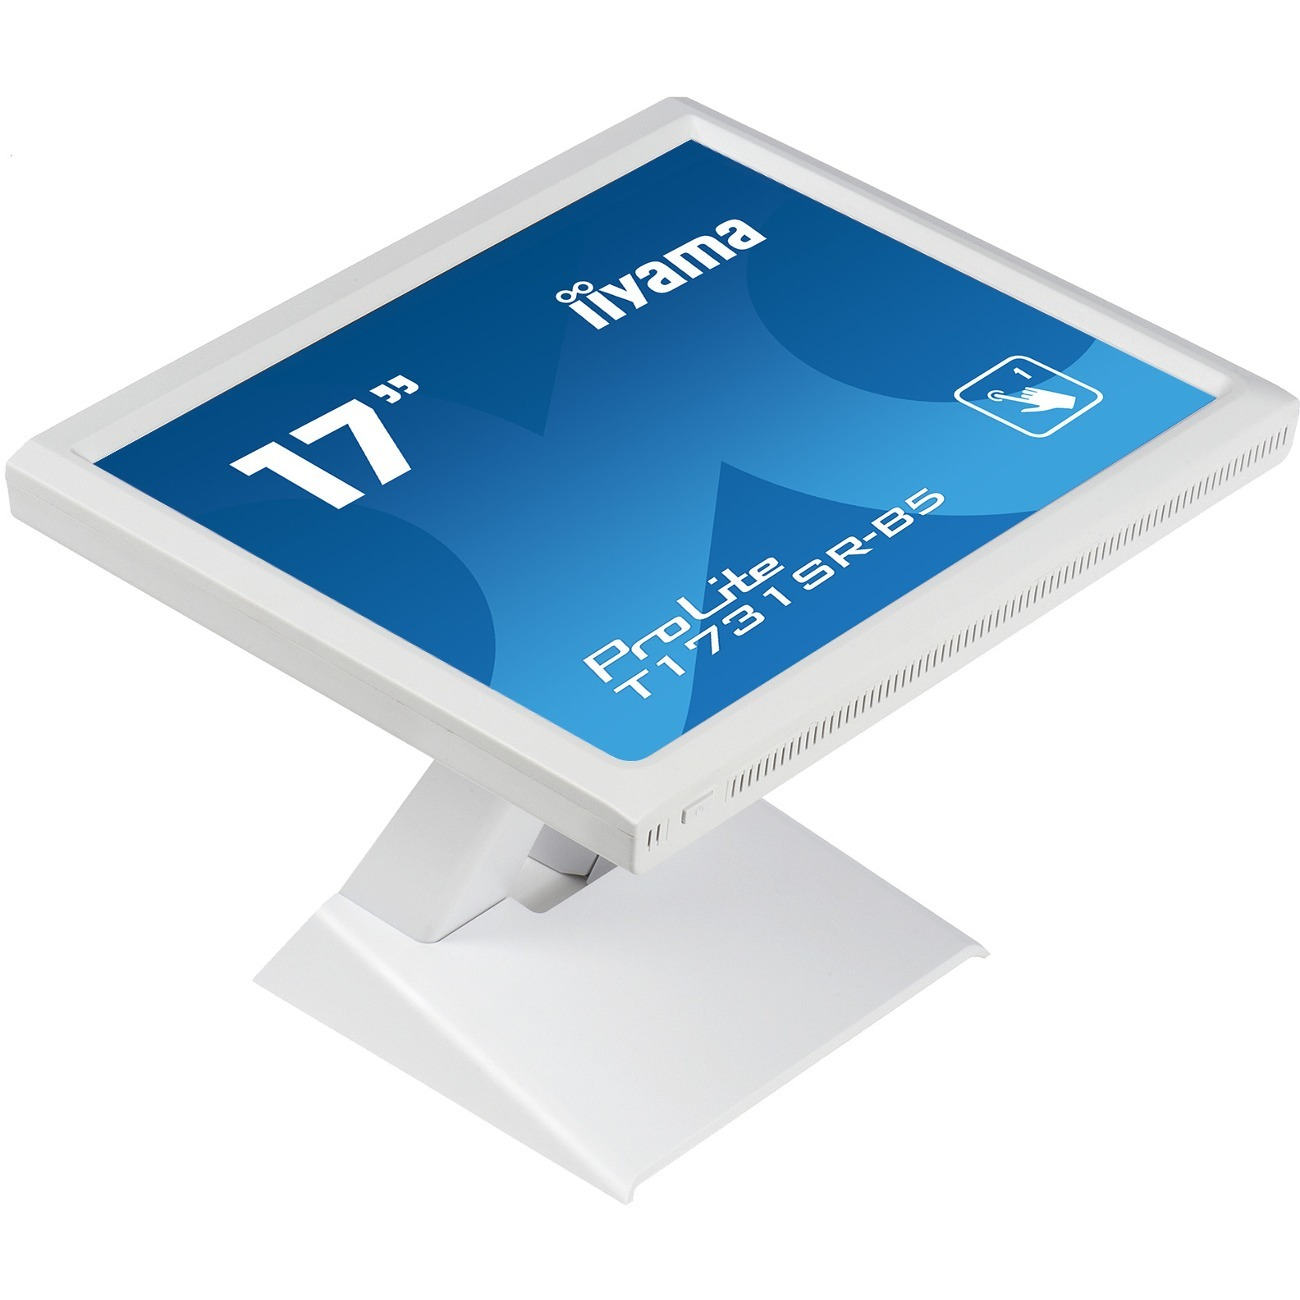 iiyama ProLite T1731SR-W5 43.2 cm 17And#34; LCD Touchscreen Monitor - 5:4 - 5 ms - 5-wire Resistive - 1280 x 1024 - SXGA - 16.7 Million Colours - 250 cd/mAndamp;#178;, 200 cd/